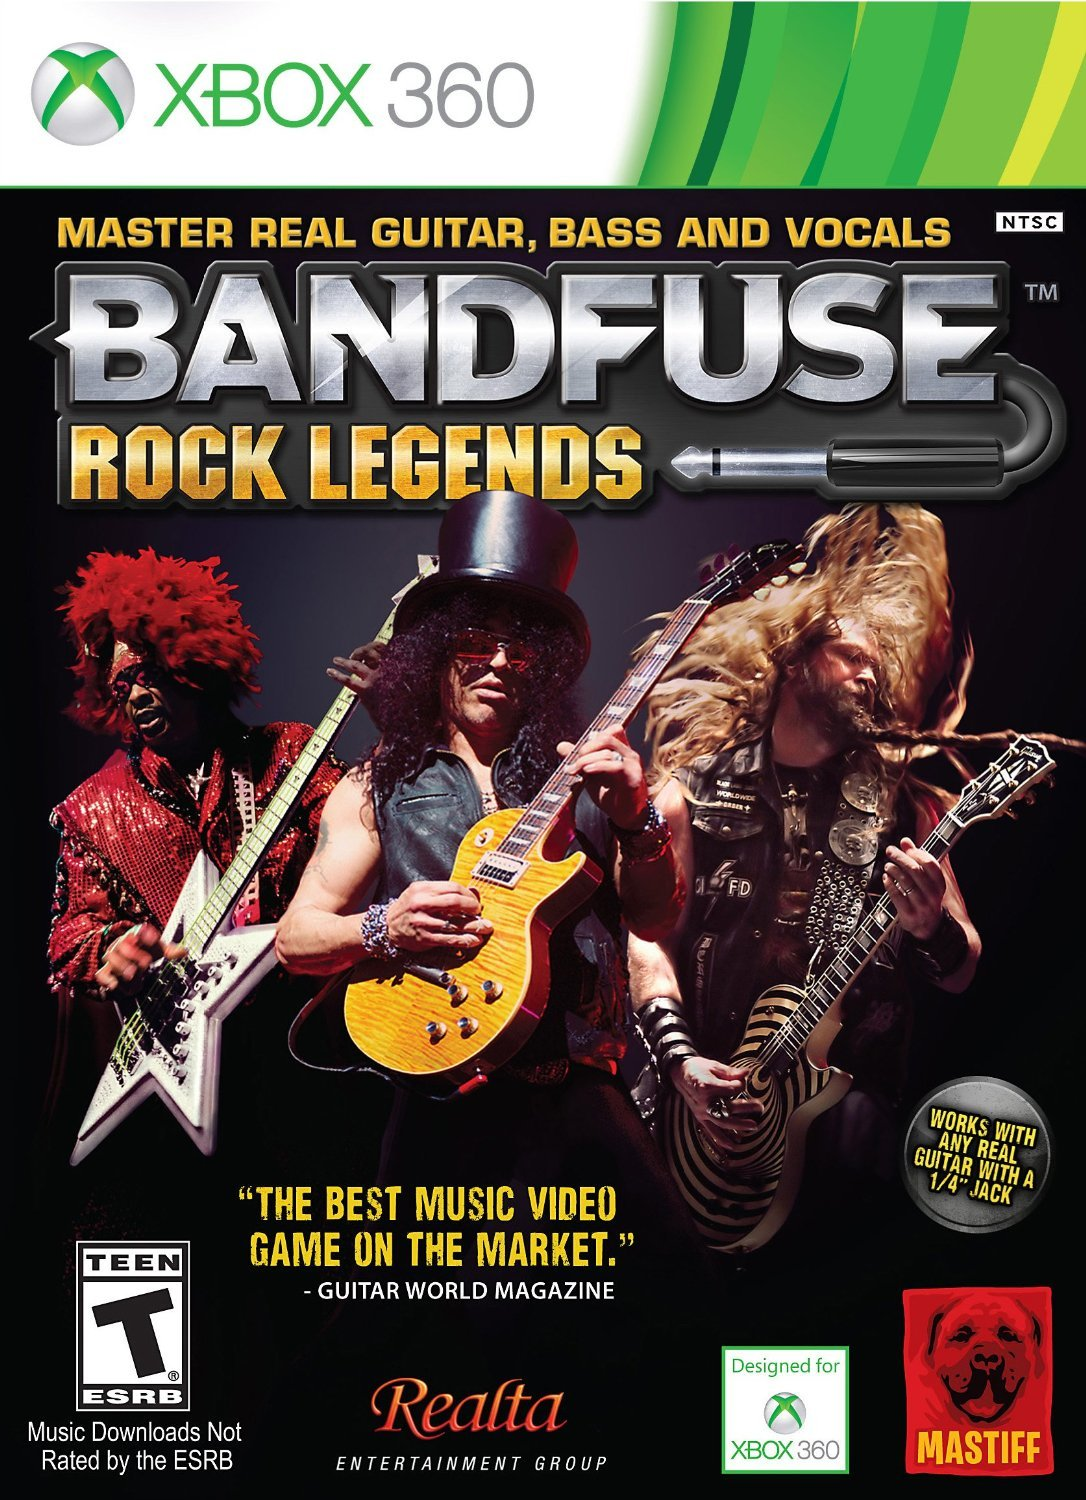 Buy Bandfuse Rock Legends Artist Pack Xbox 360 Online At Low Free Download Bass Guitar Wiring Diagram Prices In India Mastiff Video Games